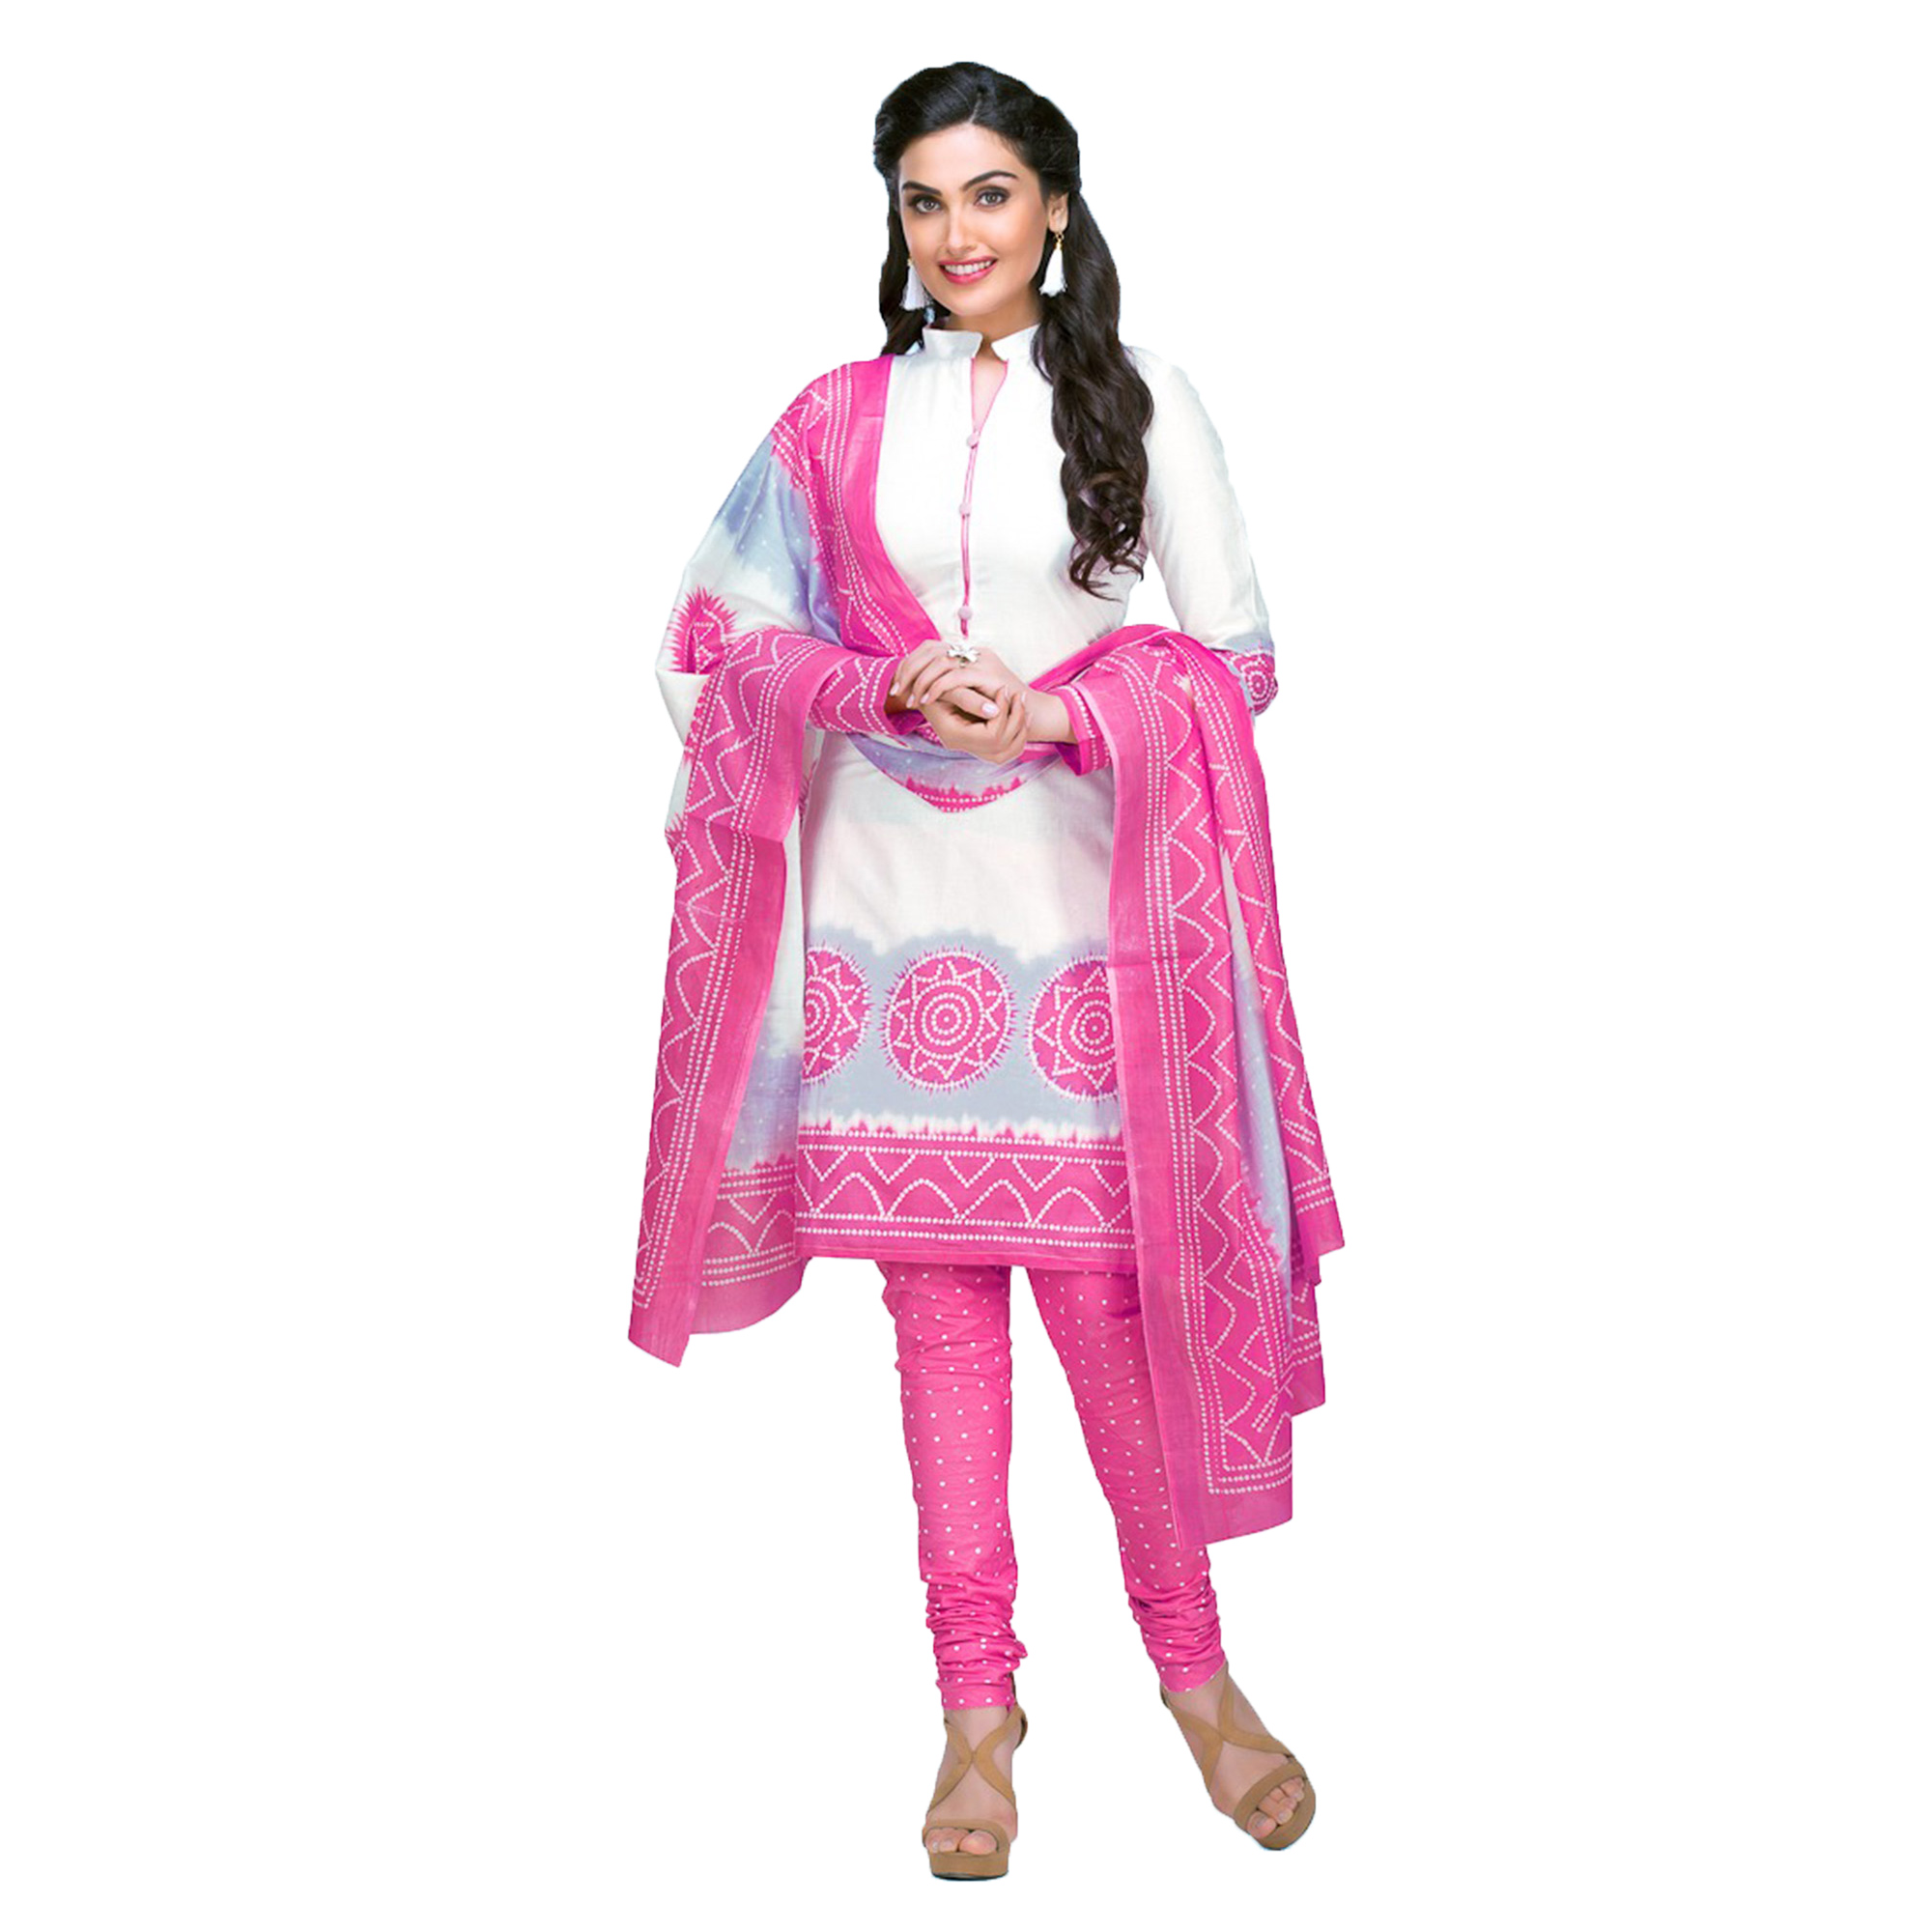 08d86d8db9883 Buy Dashing Casual Printed Jetpur Cotton Dress Materials - Pack of 2 for womens  online India